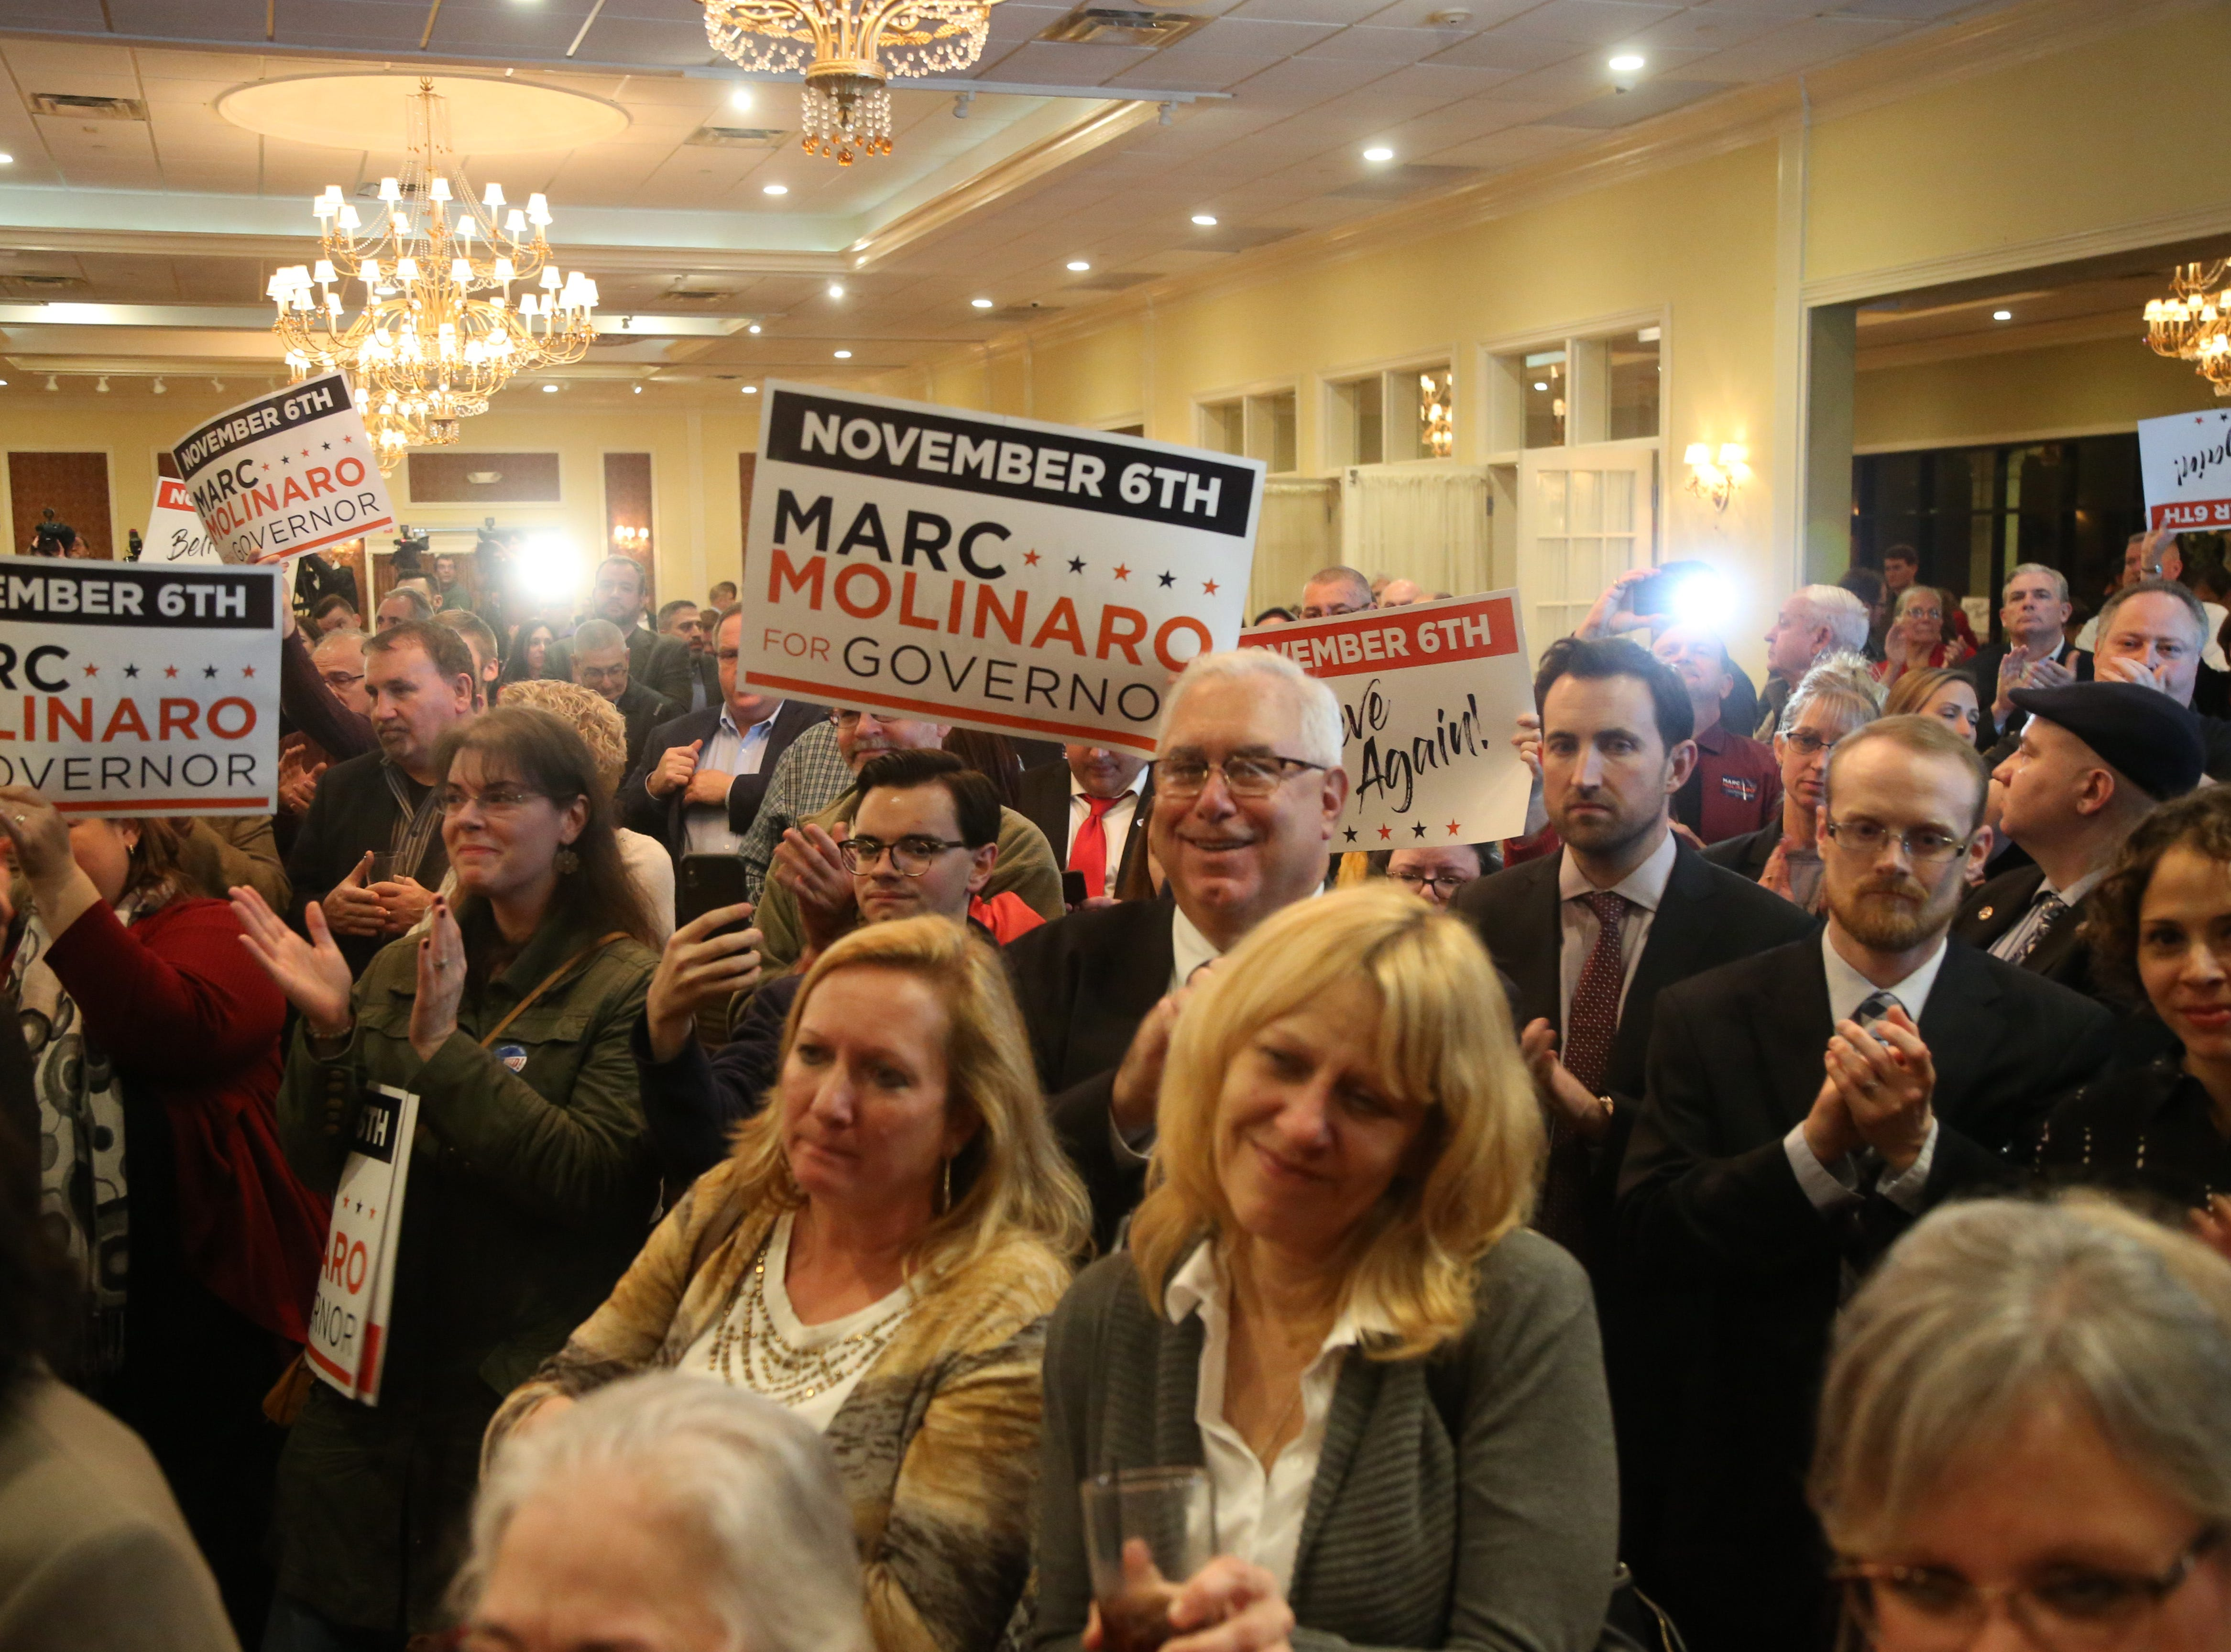 Supporters of Republican gubernatorial candidate Marc Molinaro listen as he delivers his concession speech following the results of Tuesday's election in the City of Poughkeepsie on November 6, 2018.